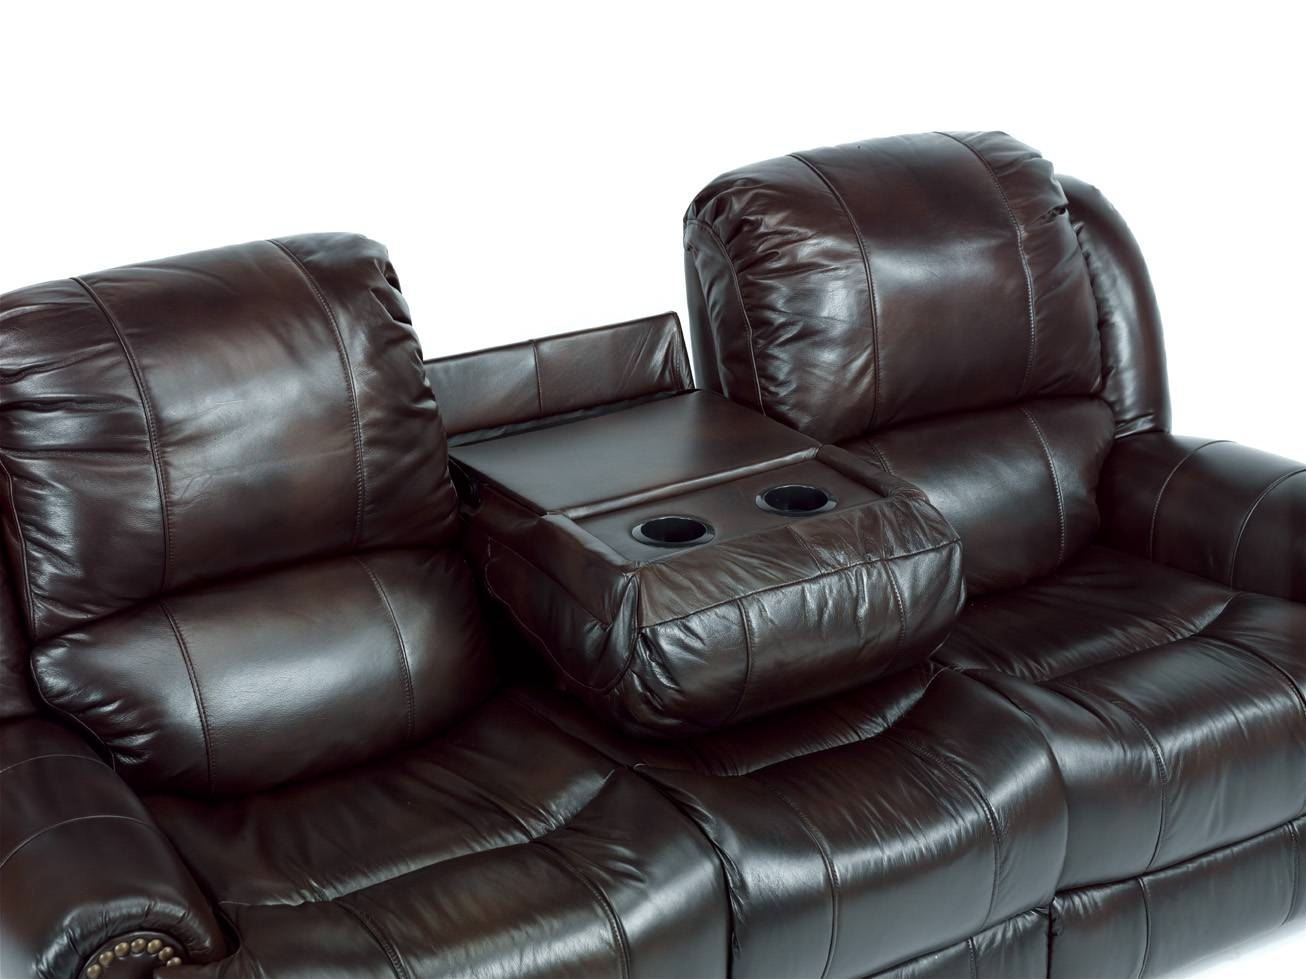 Furniture: Appealing Leather Reclining Couch For Decorating Your With Chesterfield Recliners (View 10 of 30)